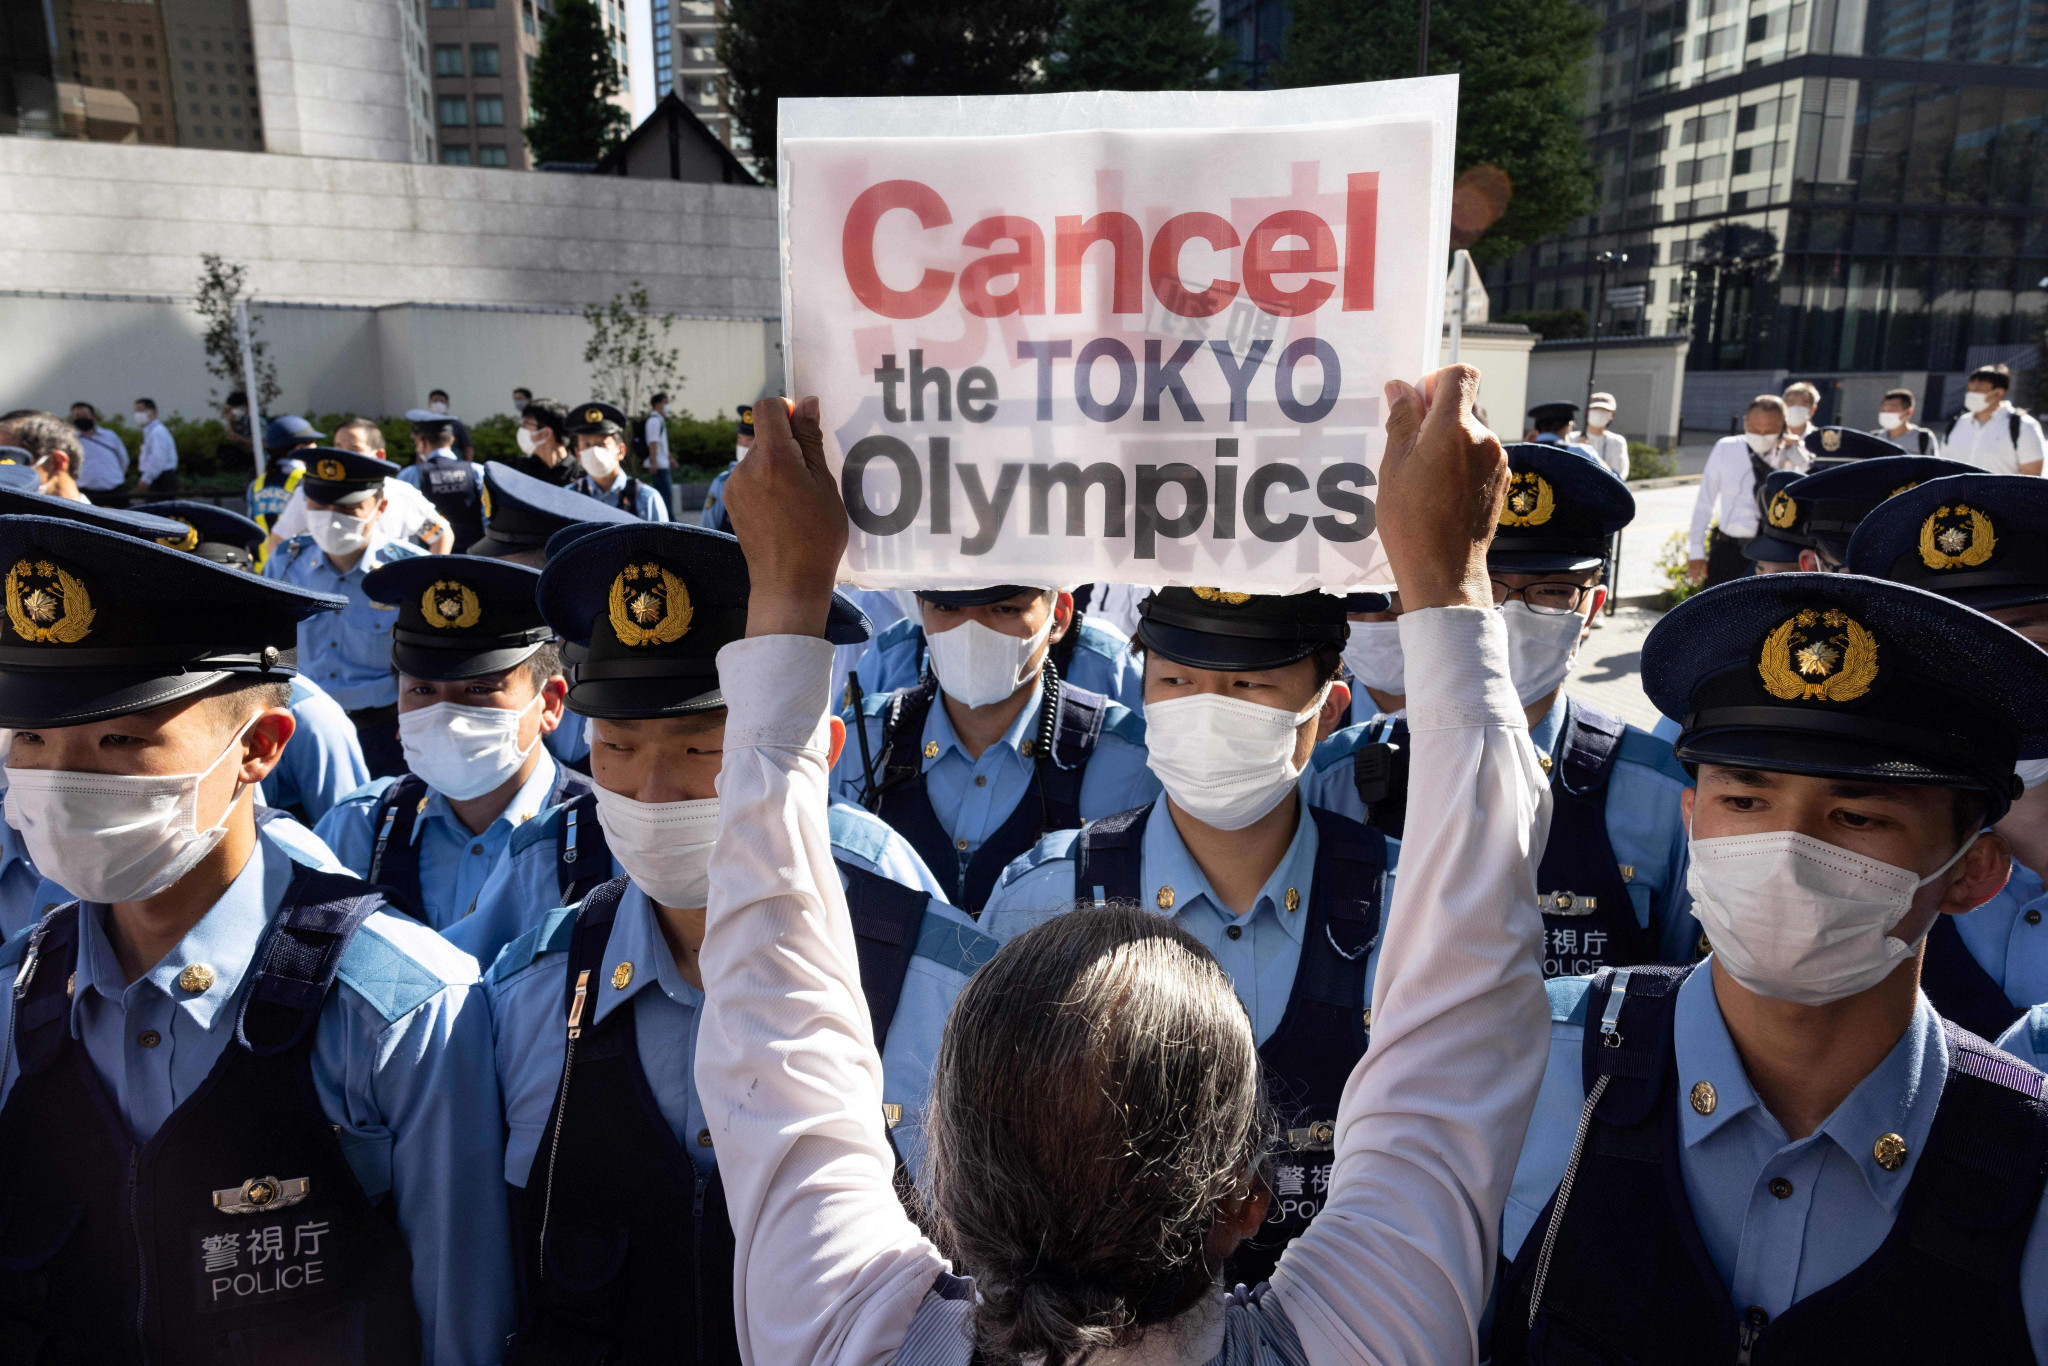 Campaigners call for the Tokyo 2020 Olympic Games to be cancelled ©Getty Images